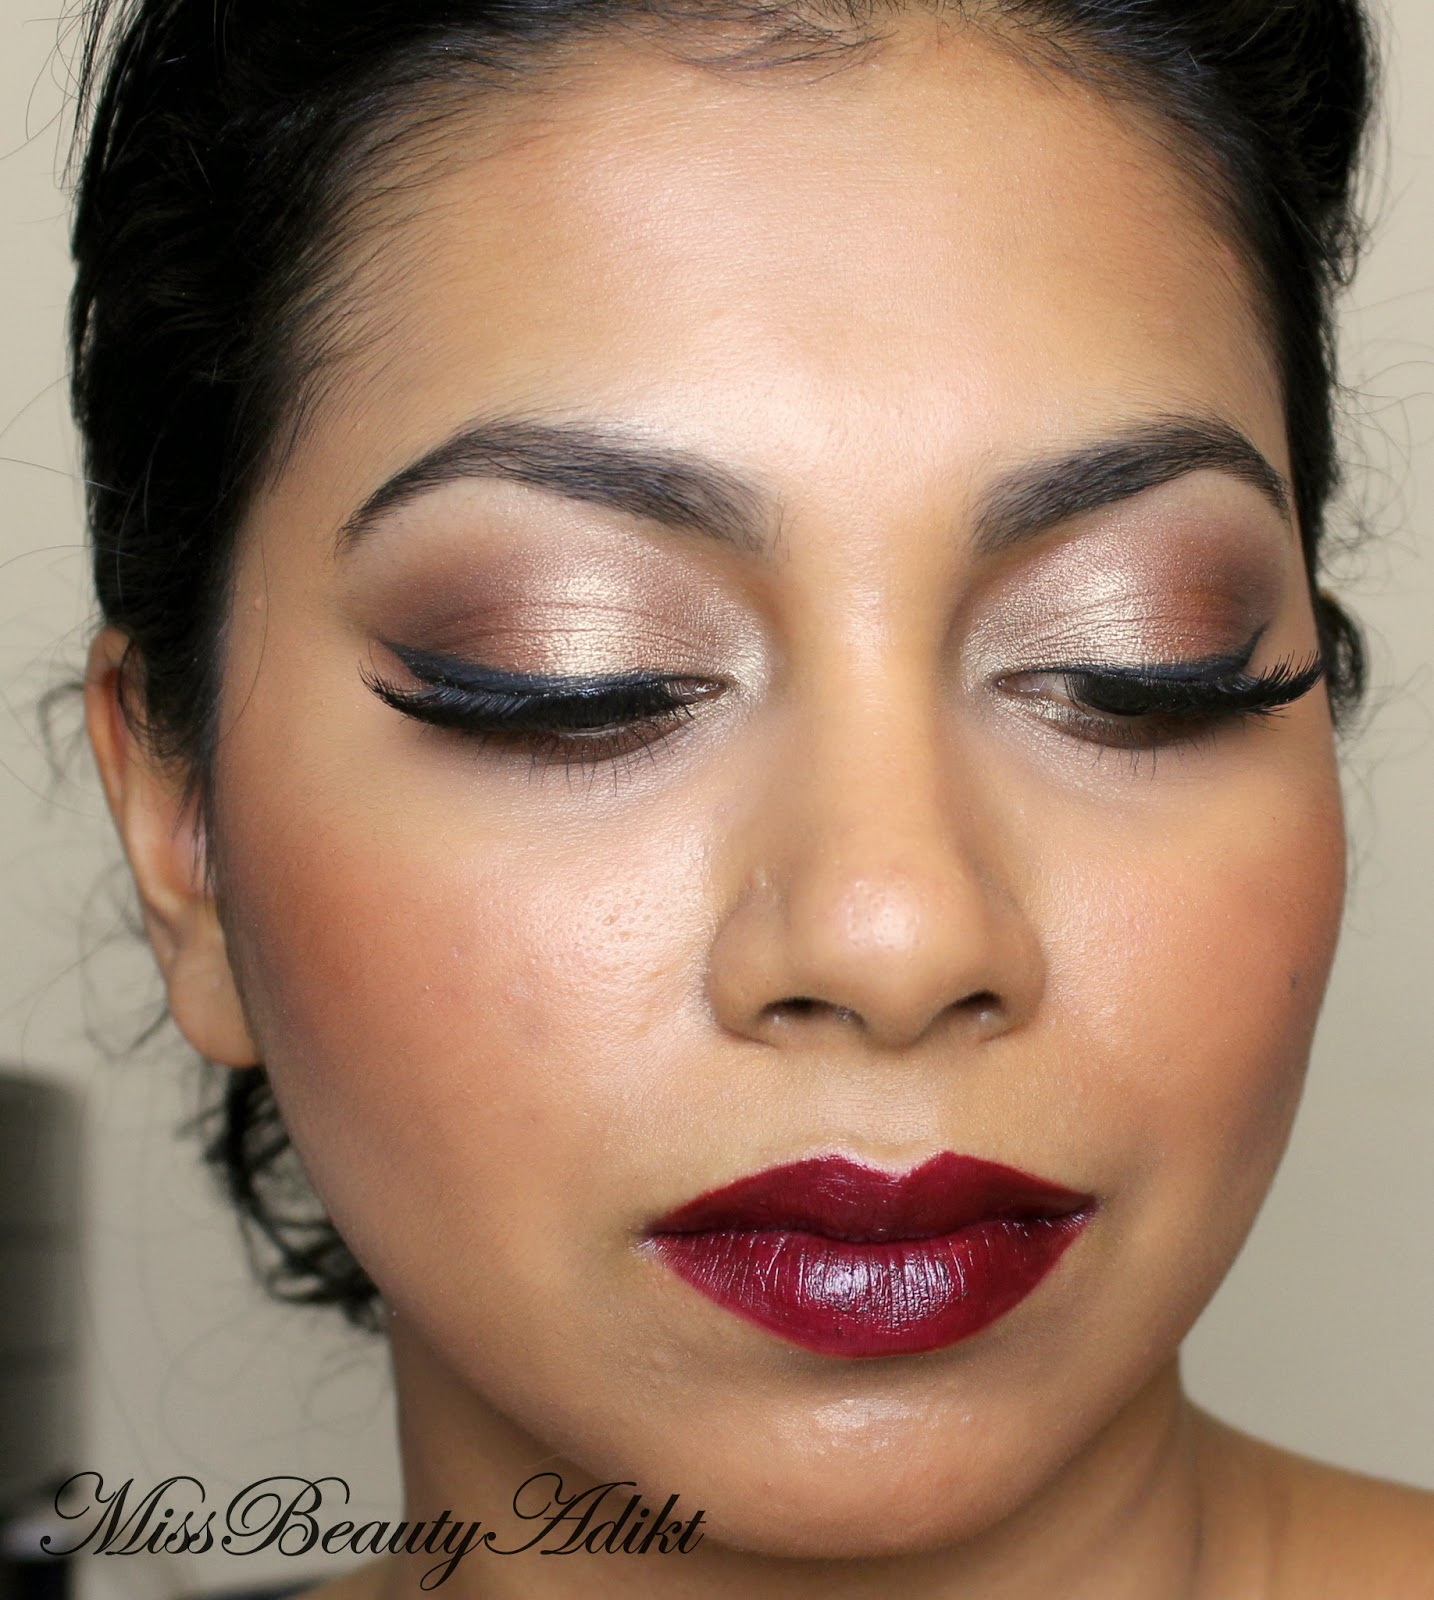 M i s s b e a u t y a d i k t riri hearts mac makeup tutorial riri hearts mac makeup tutorial baditri Image collections